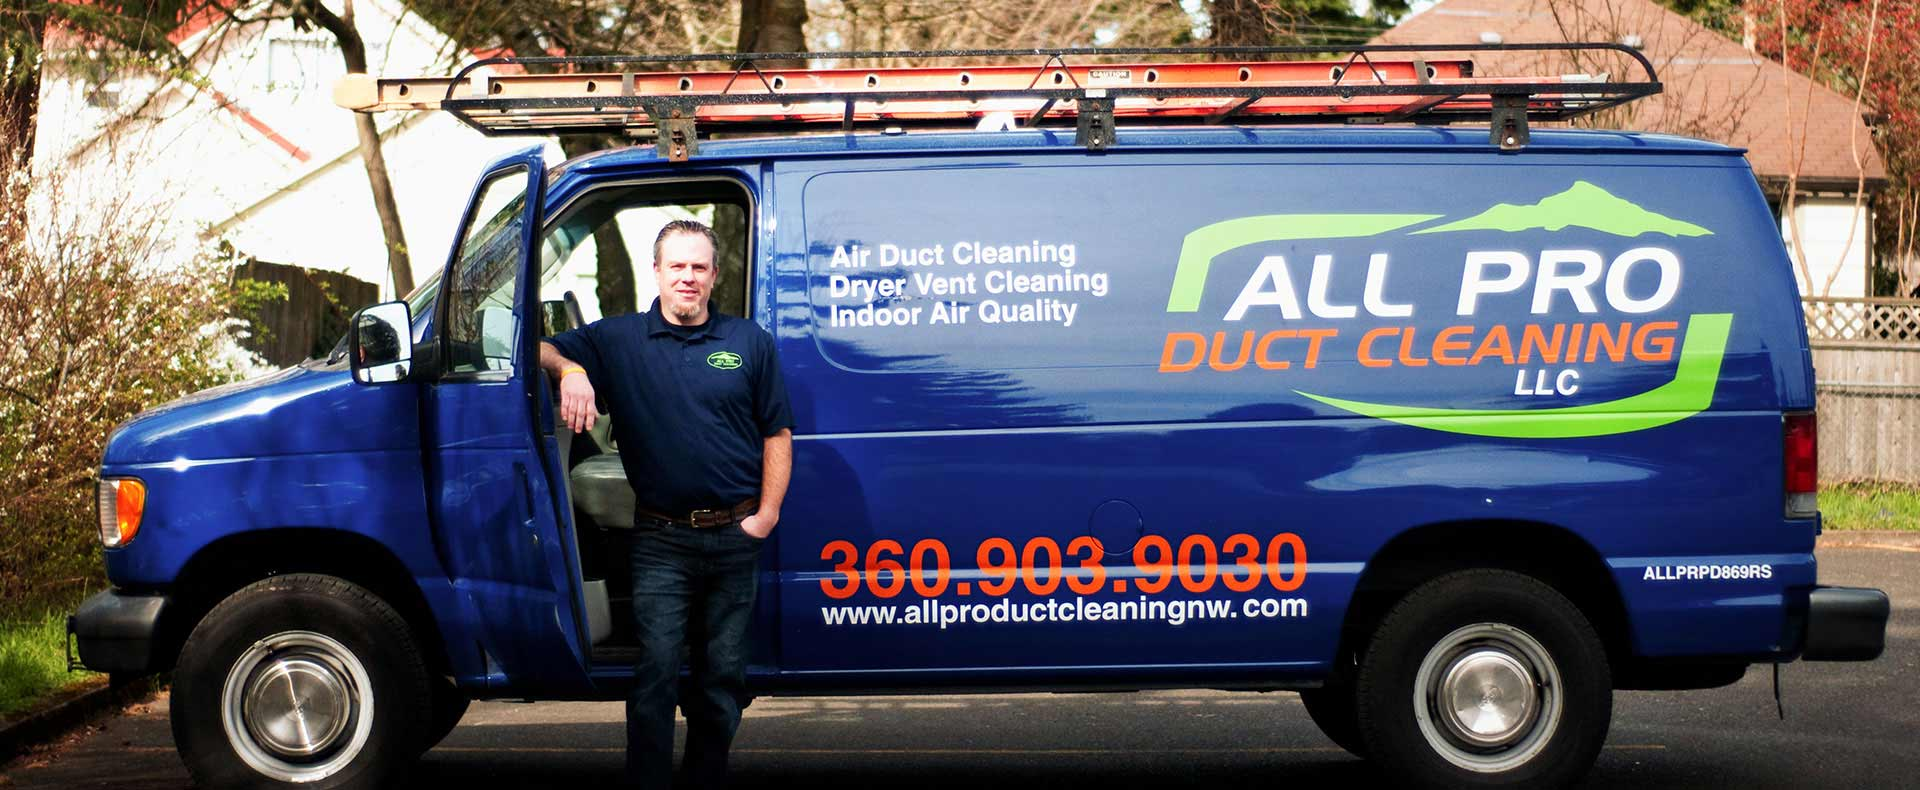 Air Duct Cleaning Vancouver Wa All Pro Duct Cleaning Llc